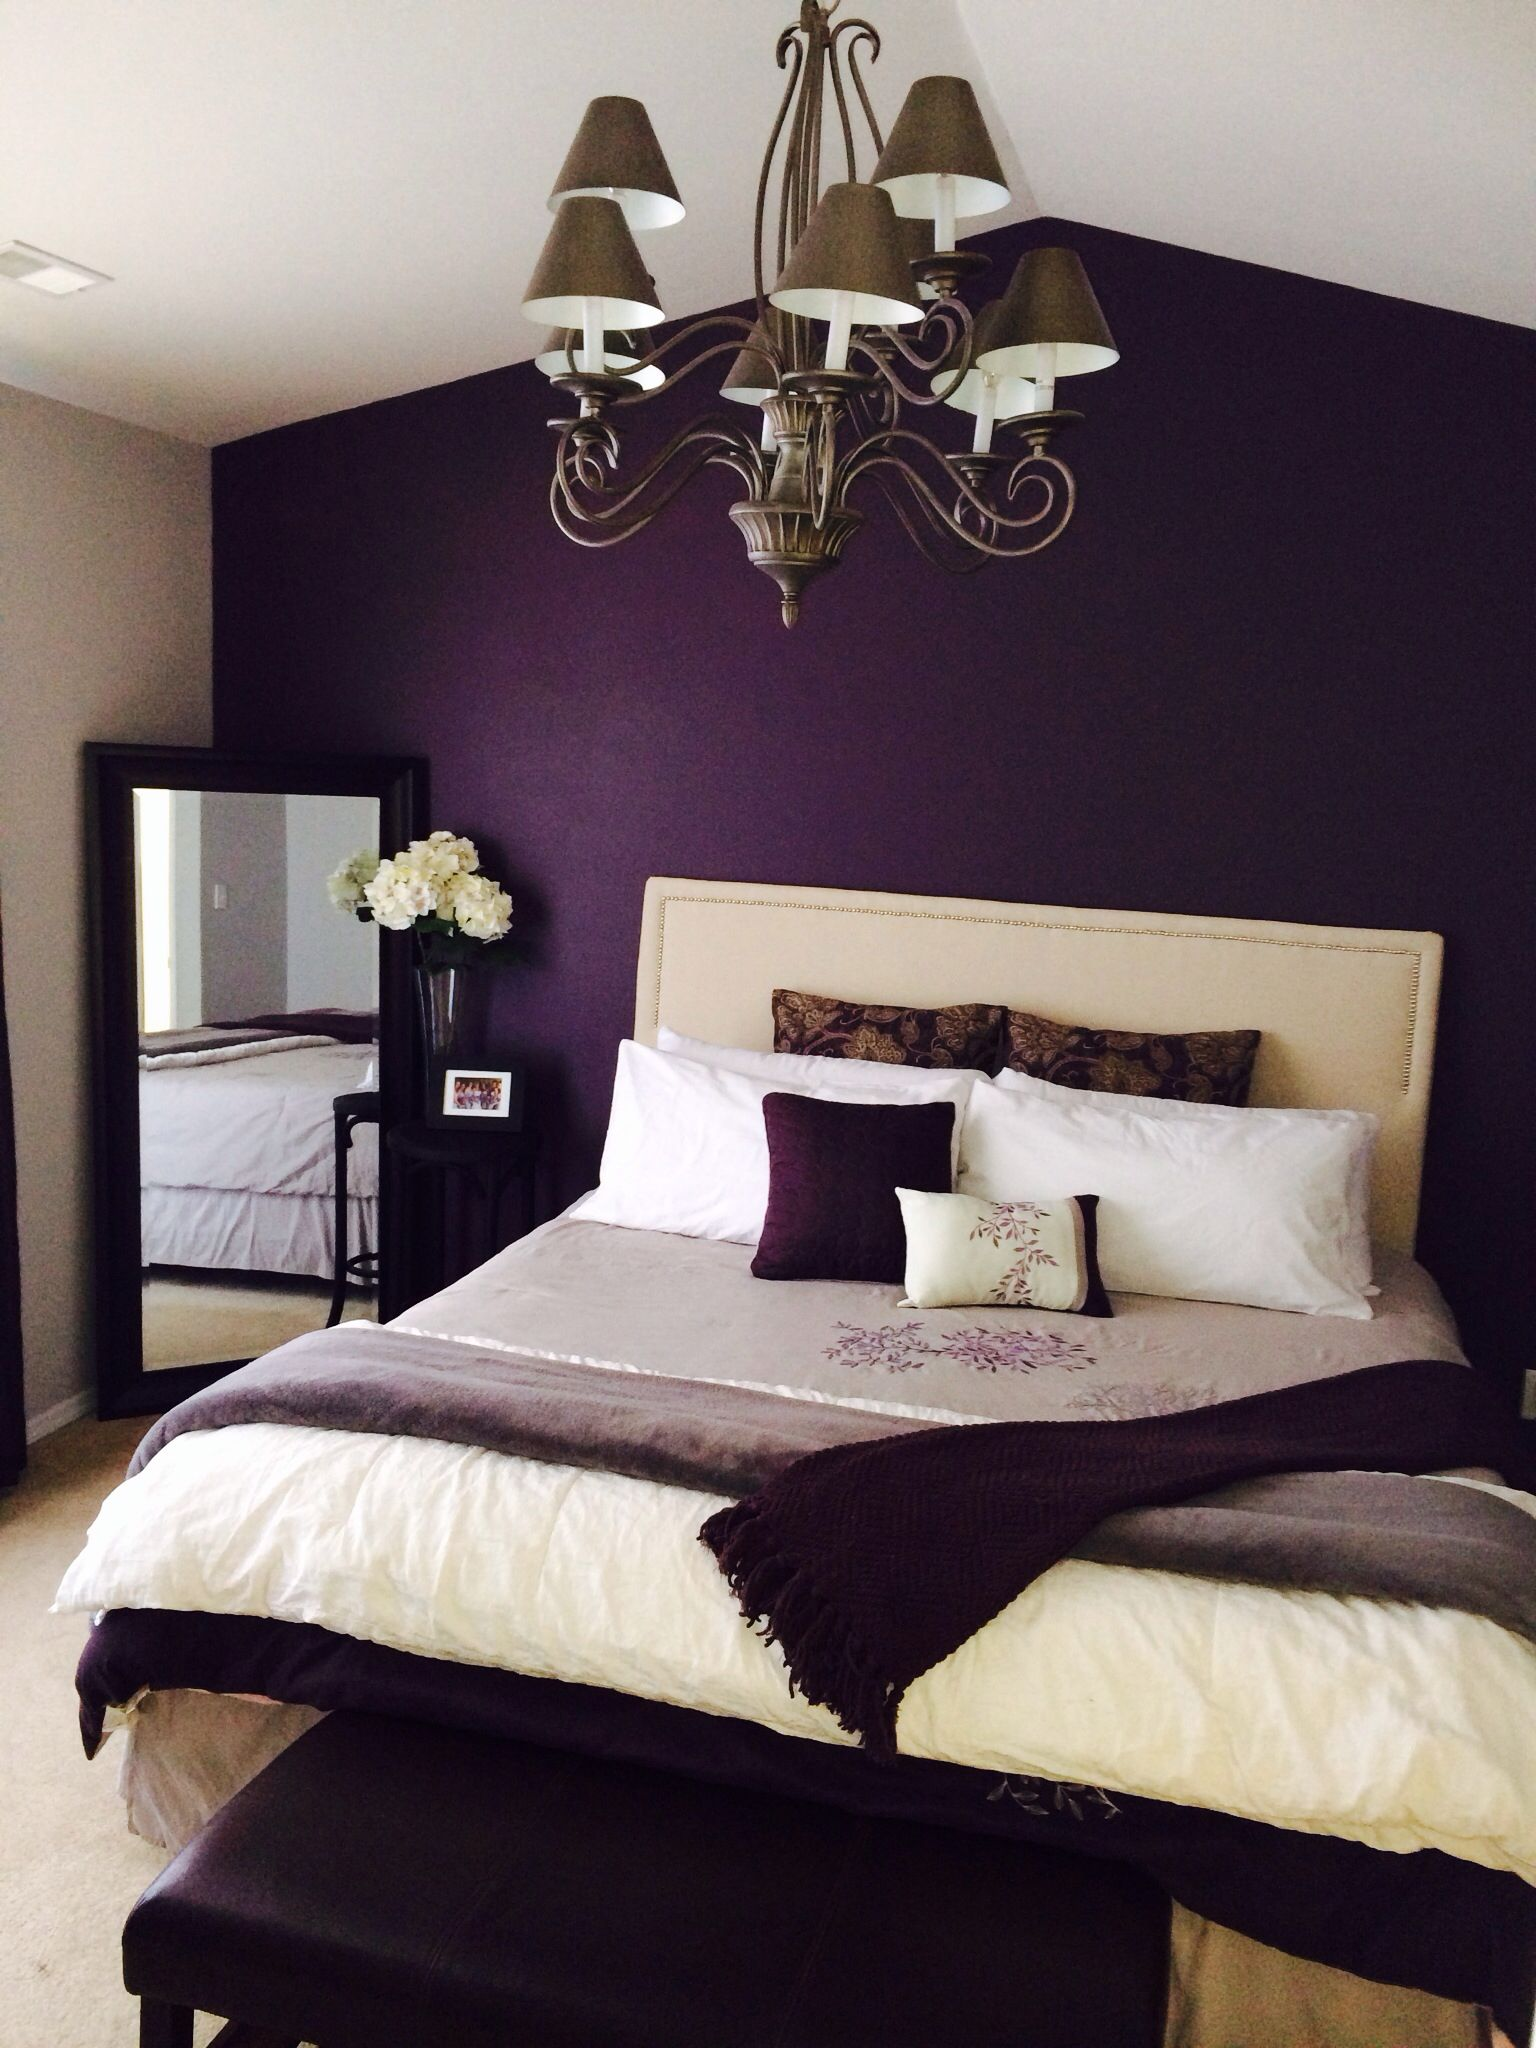 Bedroom design purple and grey - Latest 30 Romantic Bedroom Ideas To Make The Love Happen Purple Accent Wallspurple